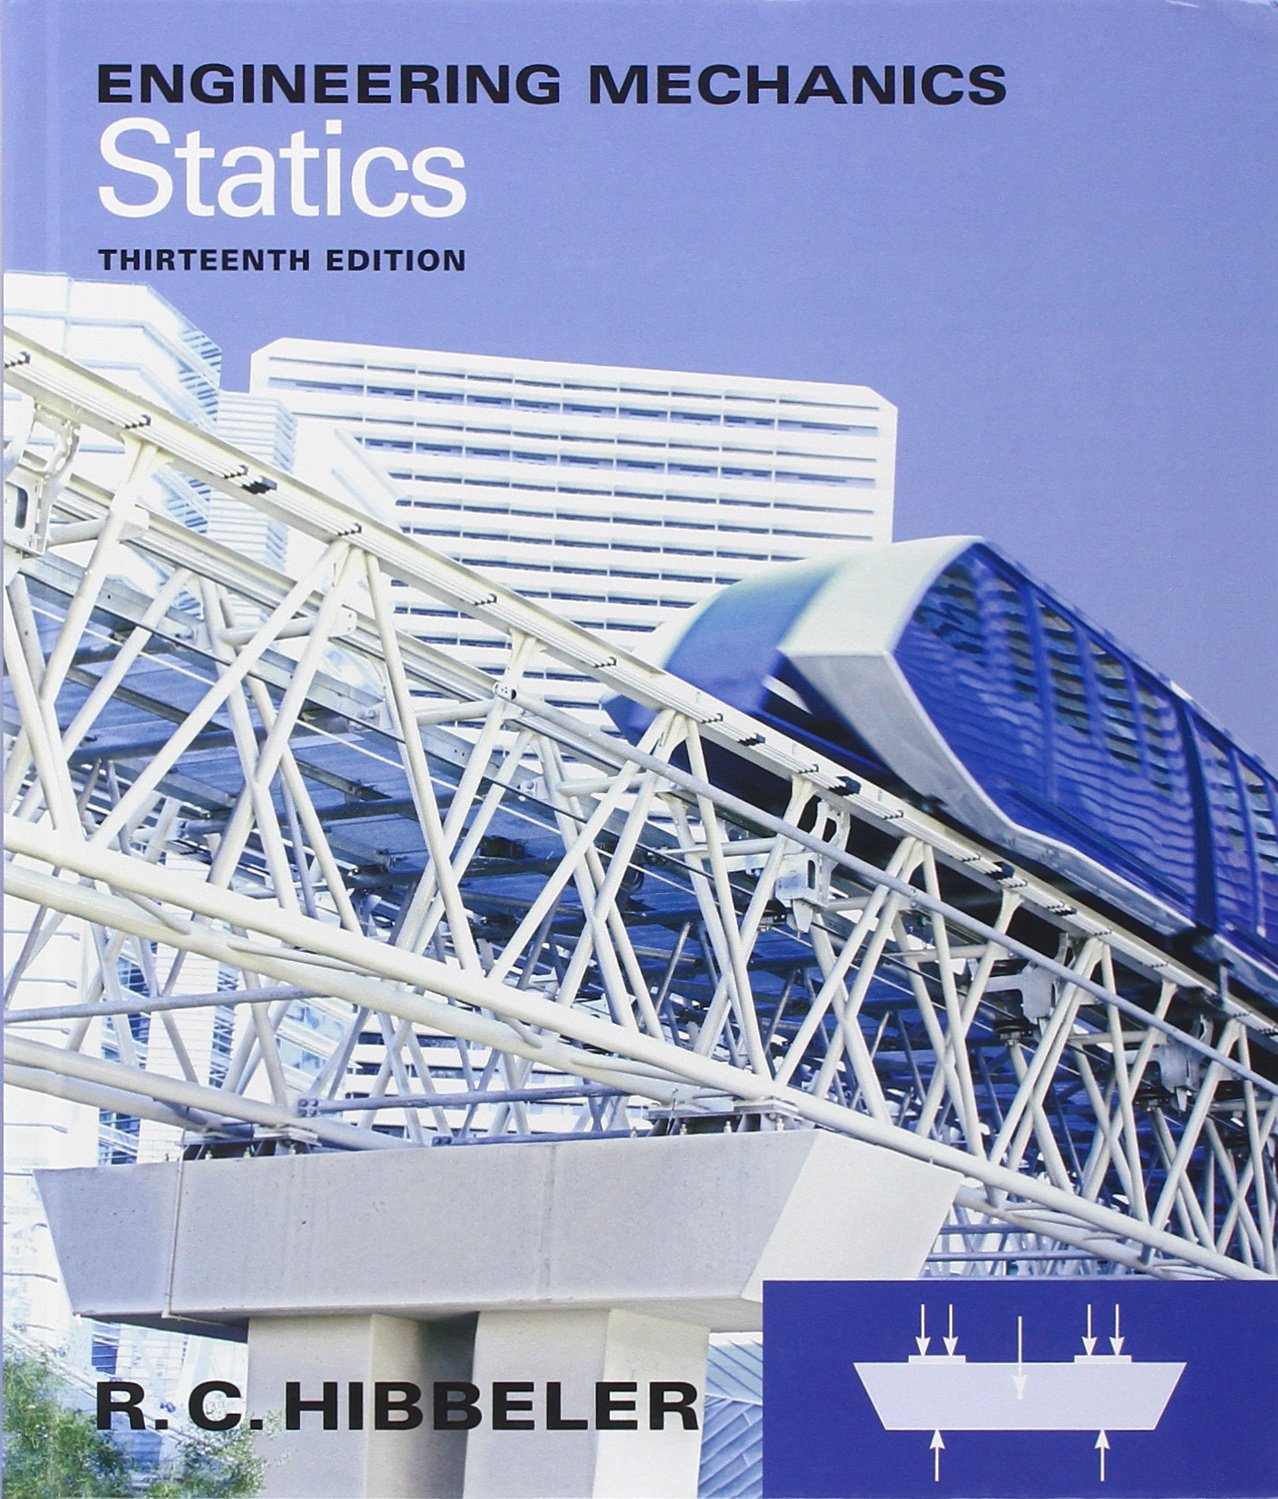 Engineering Mechanics: Statics (13th Edition): Russell C. Hibbeler:  9780132915540: Books - Amazon.ca